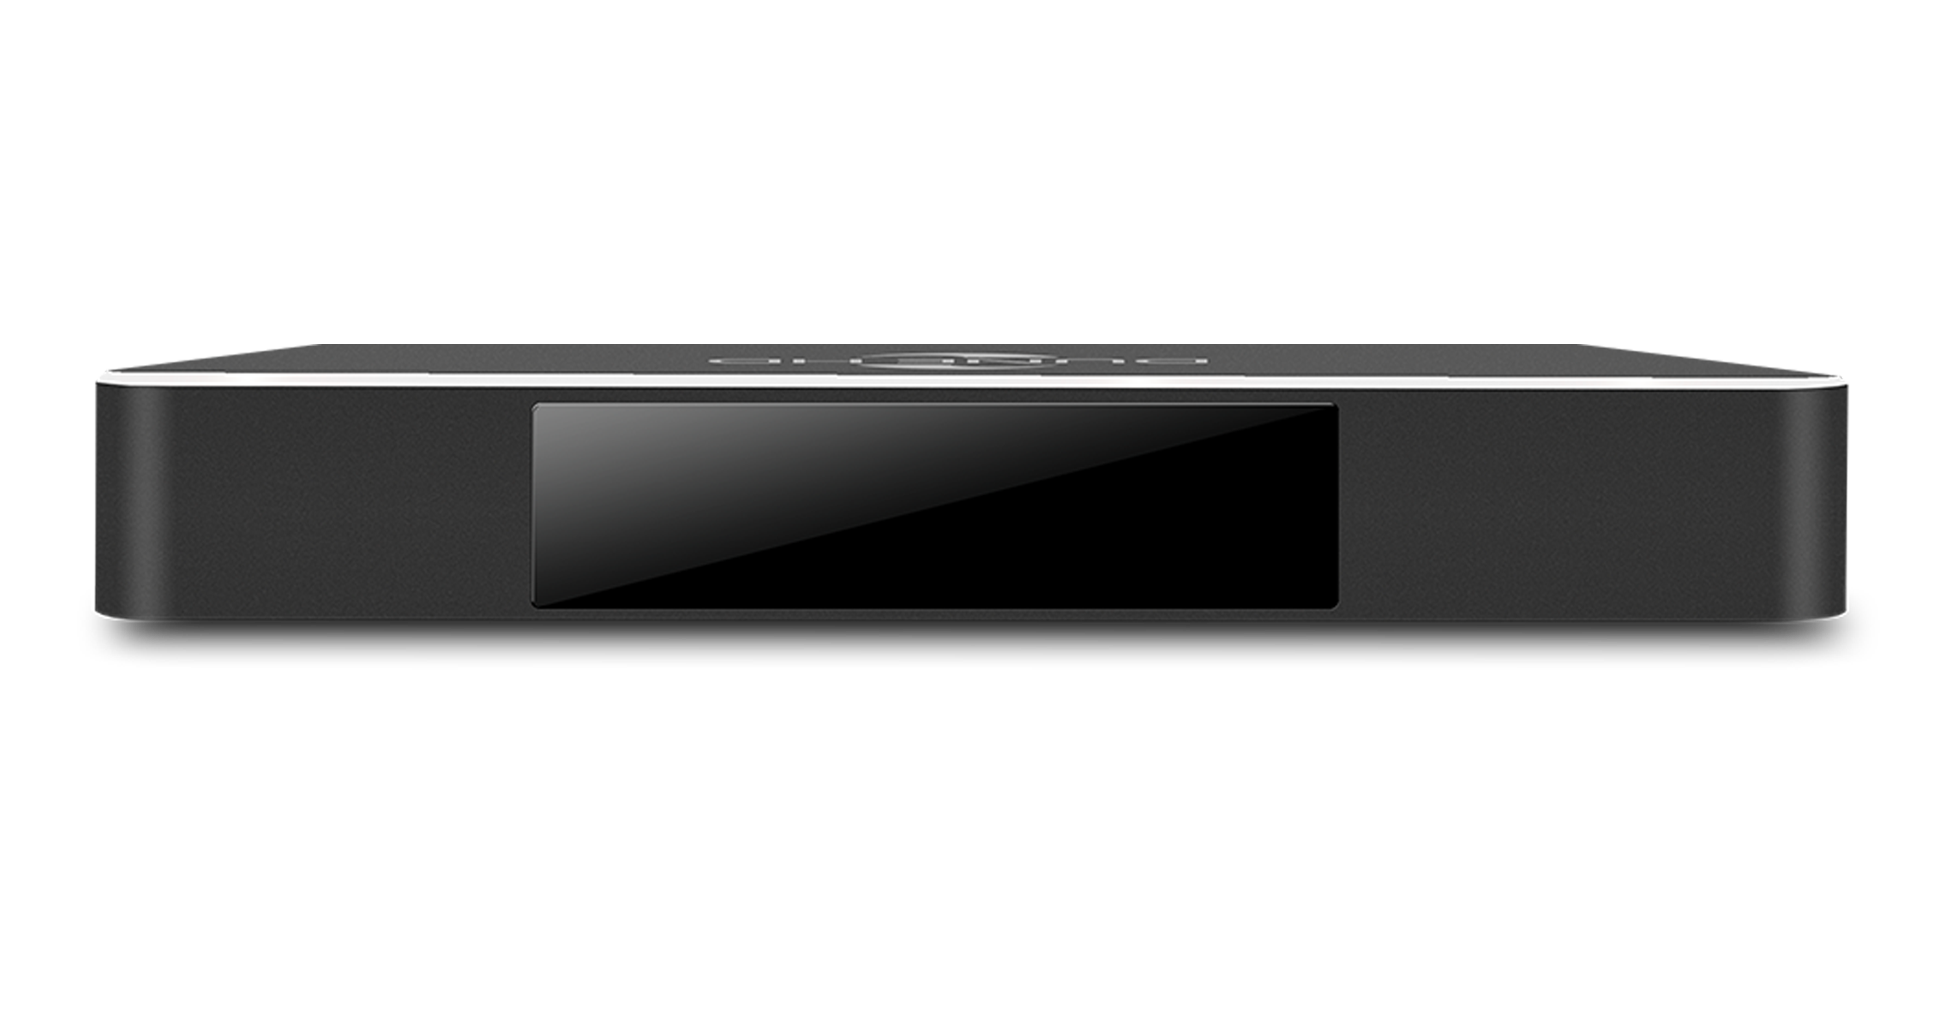 Dune HD Media Player - Dune HD Pro 4K | Dune HD